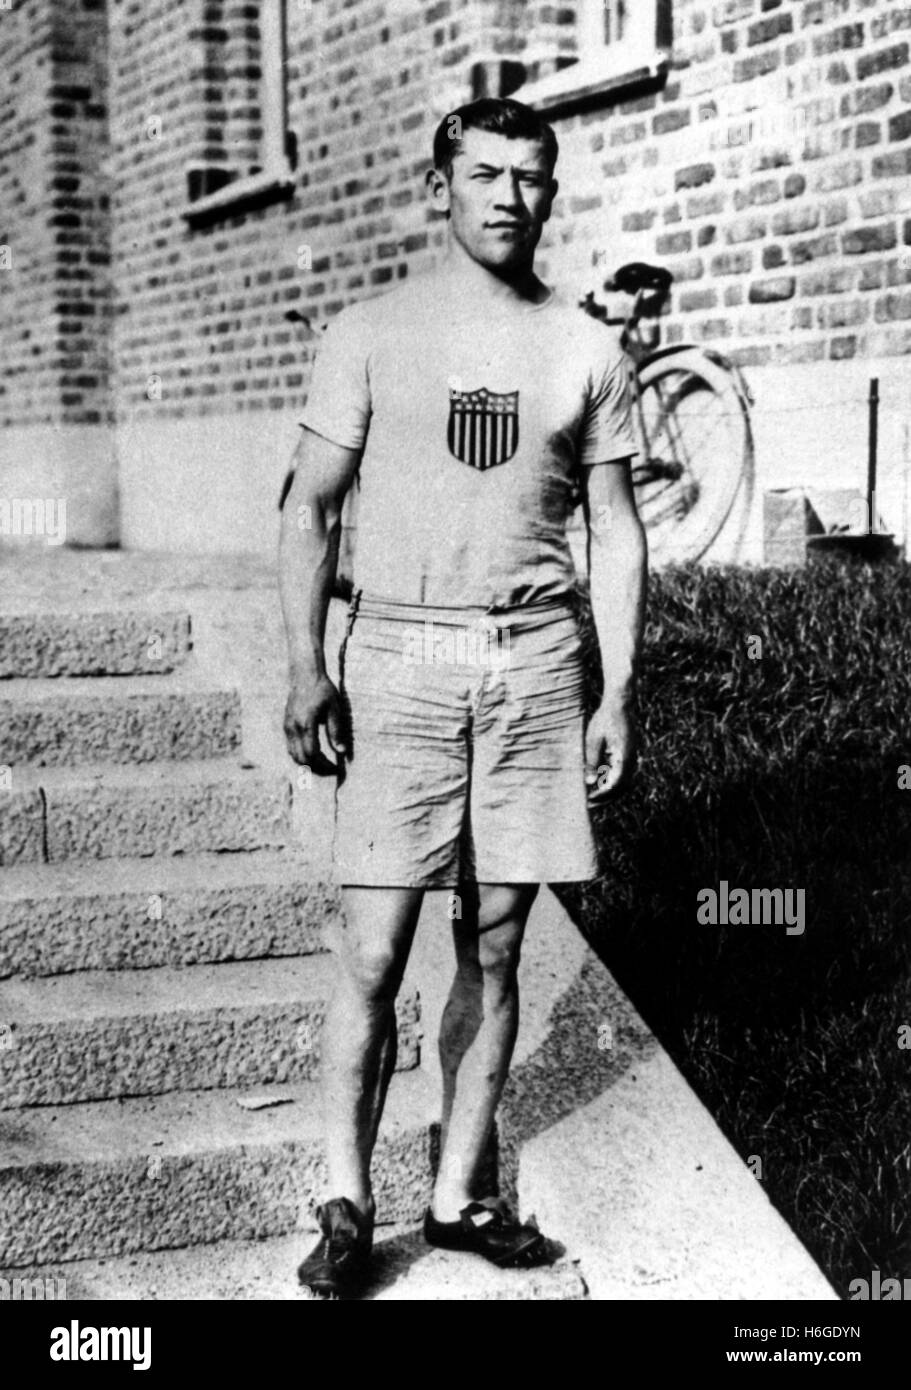 JIM THORPE (1887-1953) American athlete and Olympic Gold Medallist wearing his Olympic kit about 1912 - Stock Image